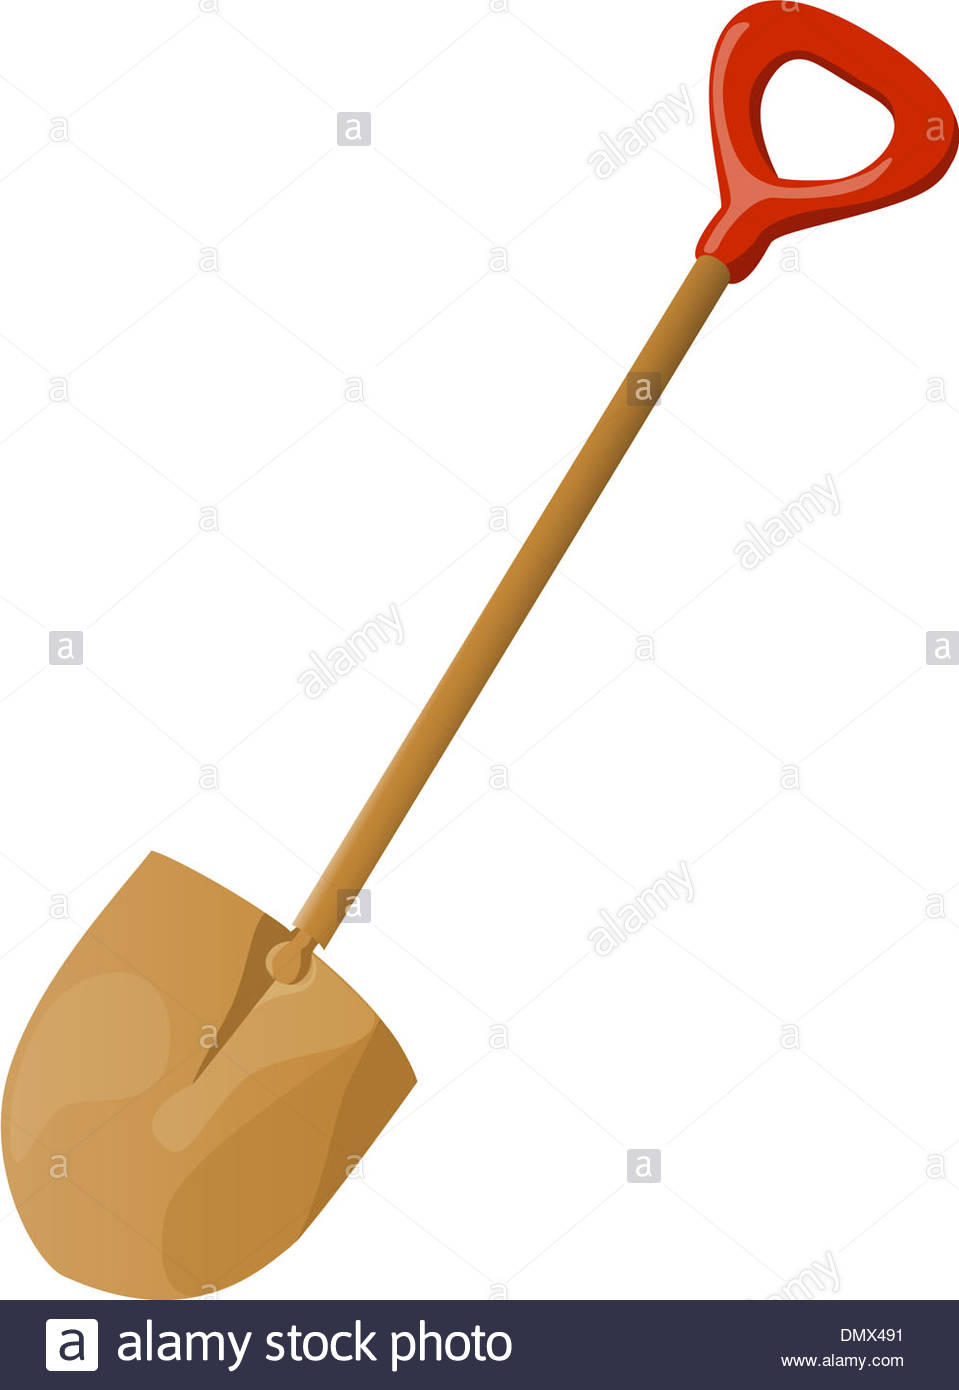 agriculture tools shovel agricutural implement tool farming